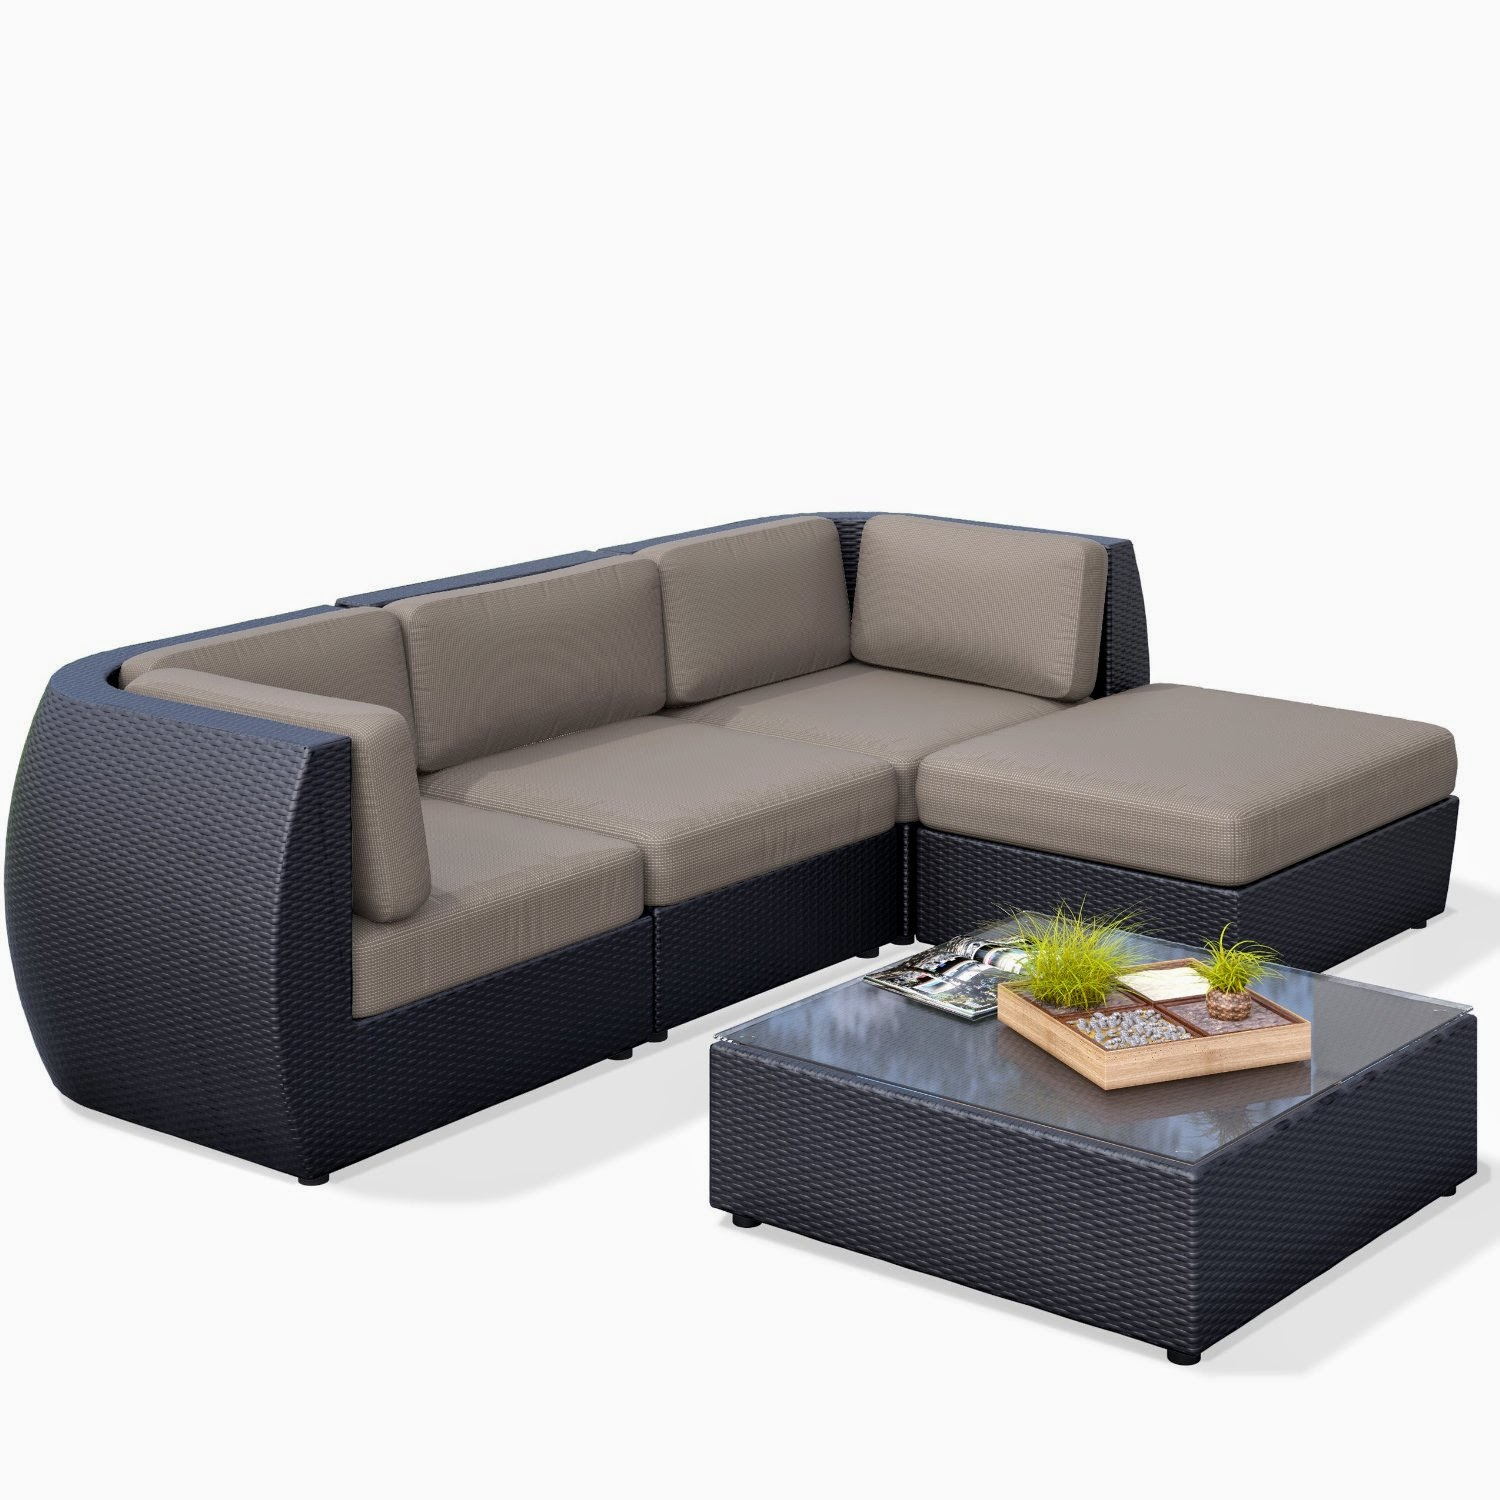 Outdoor Couch Curved Sofa Curved Outdoor Sofa